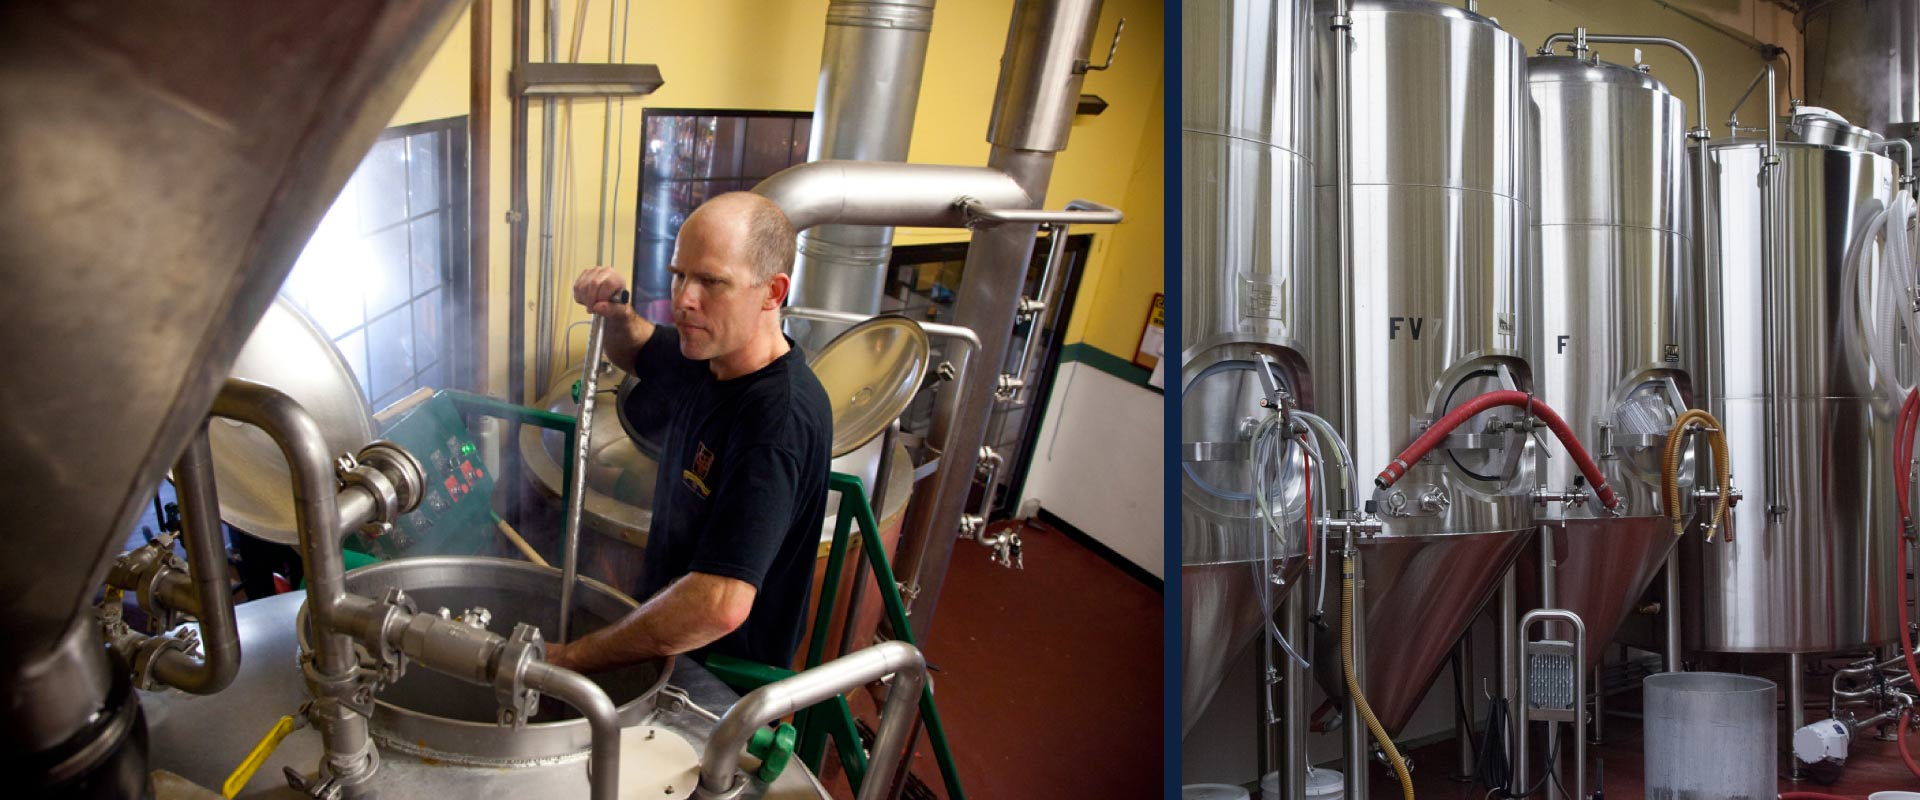 Golden Valley Brewery & Restaurant's Brewmaster Jesse Shue in the McMinnville brewery.